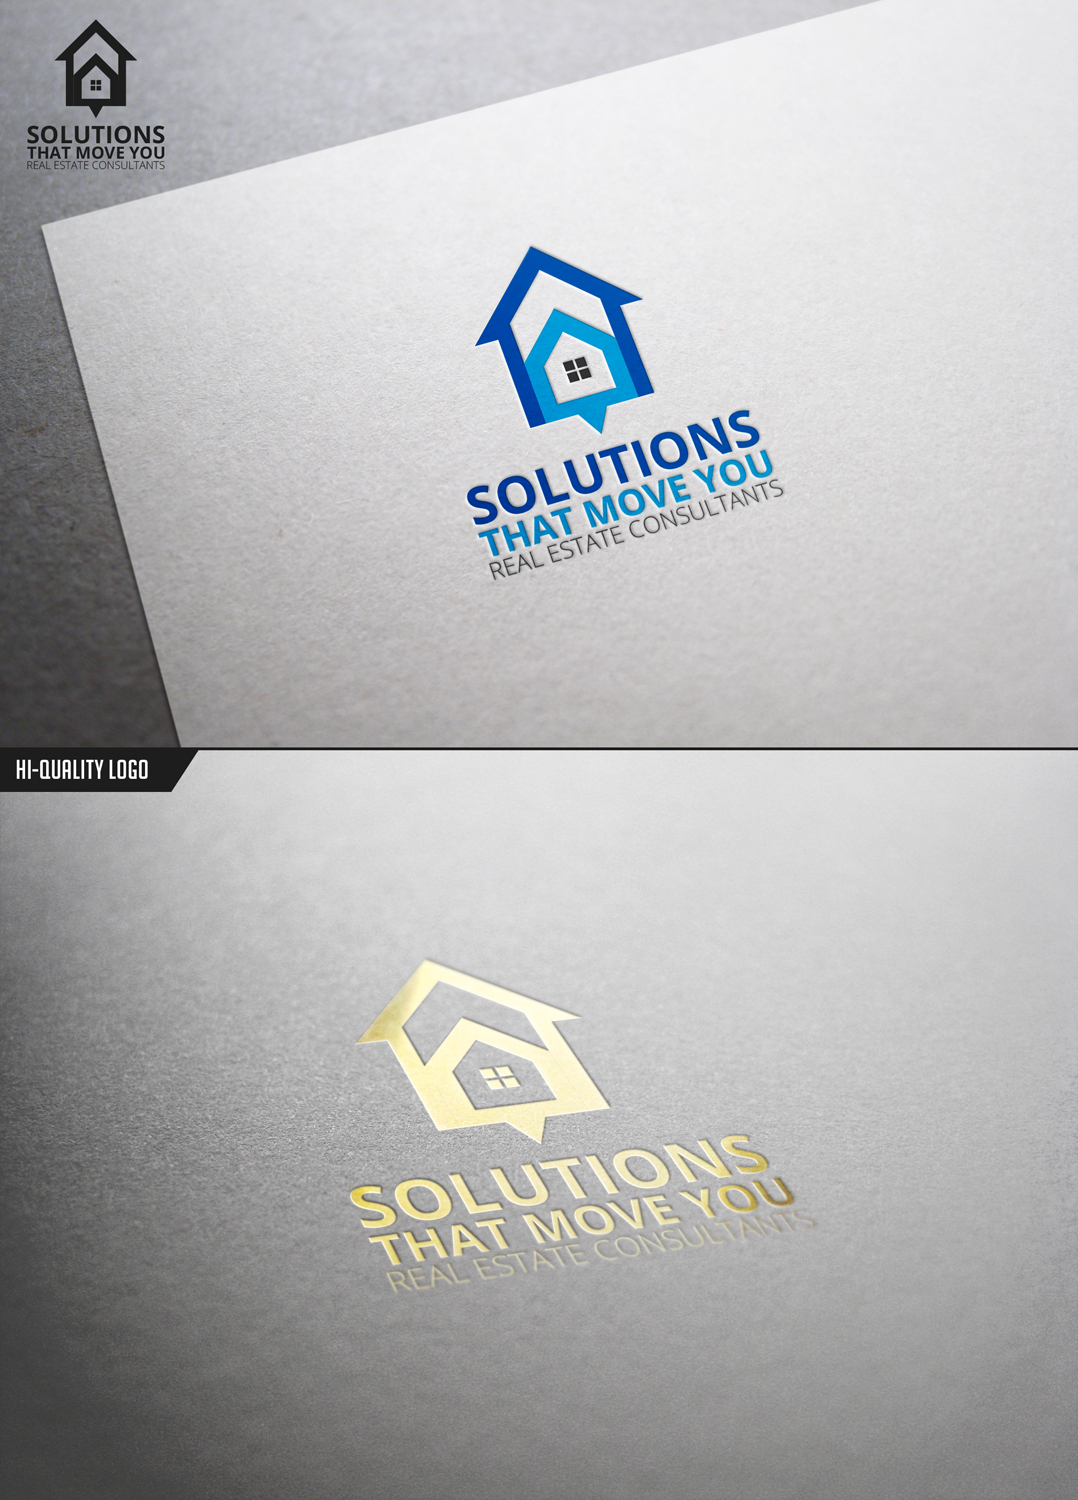 Logo Design by Virgilio Pineda III - Entry No. 78 in the Logo Design Contest Imaginative Logo Design for Solutions That Move You.